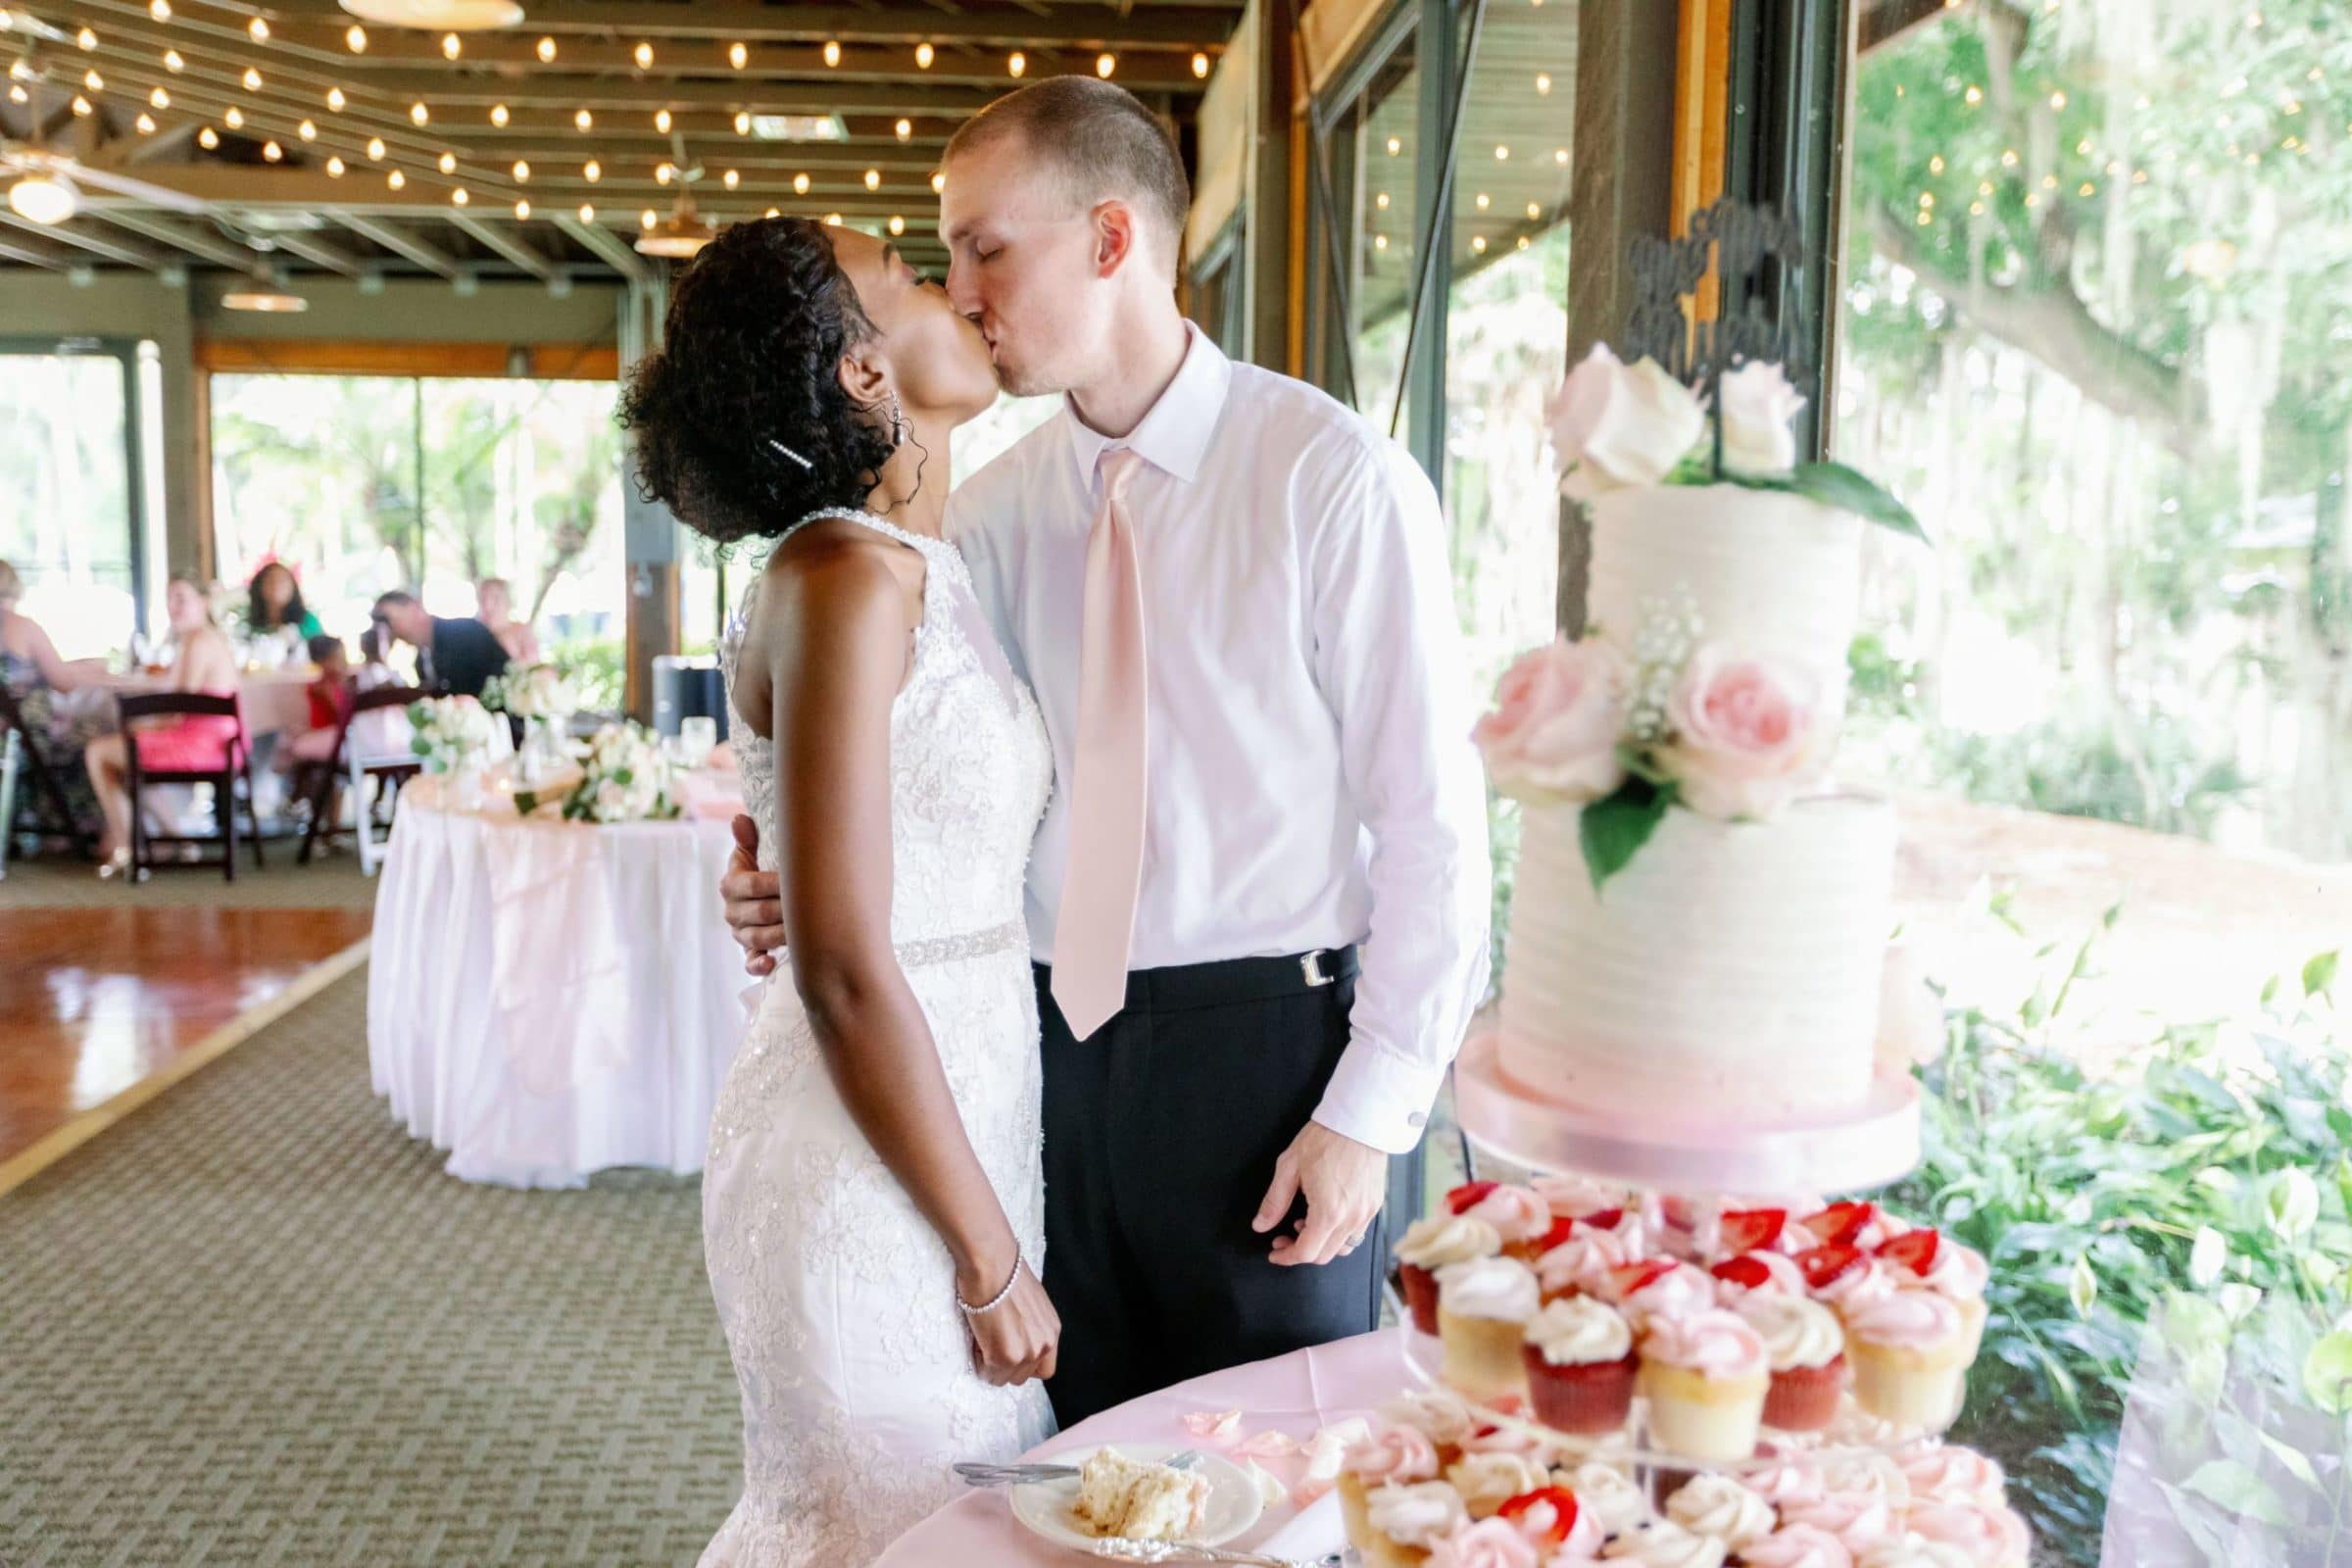 Bride and Groom kissing behind wedding cake and dessert